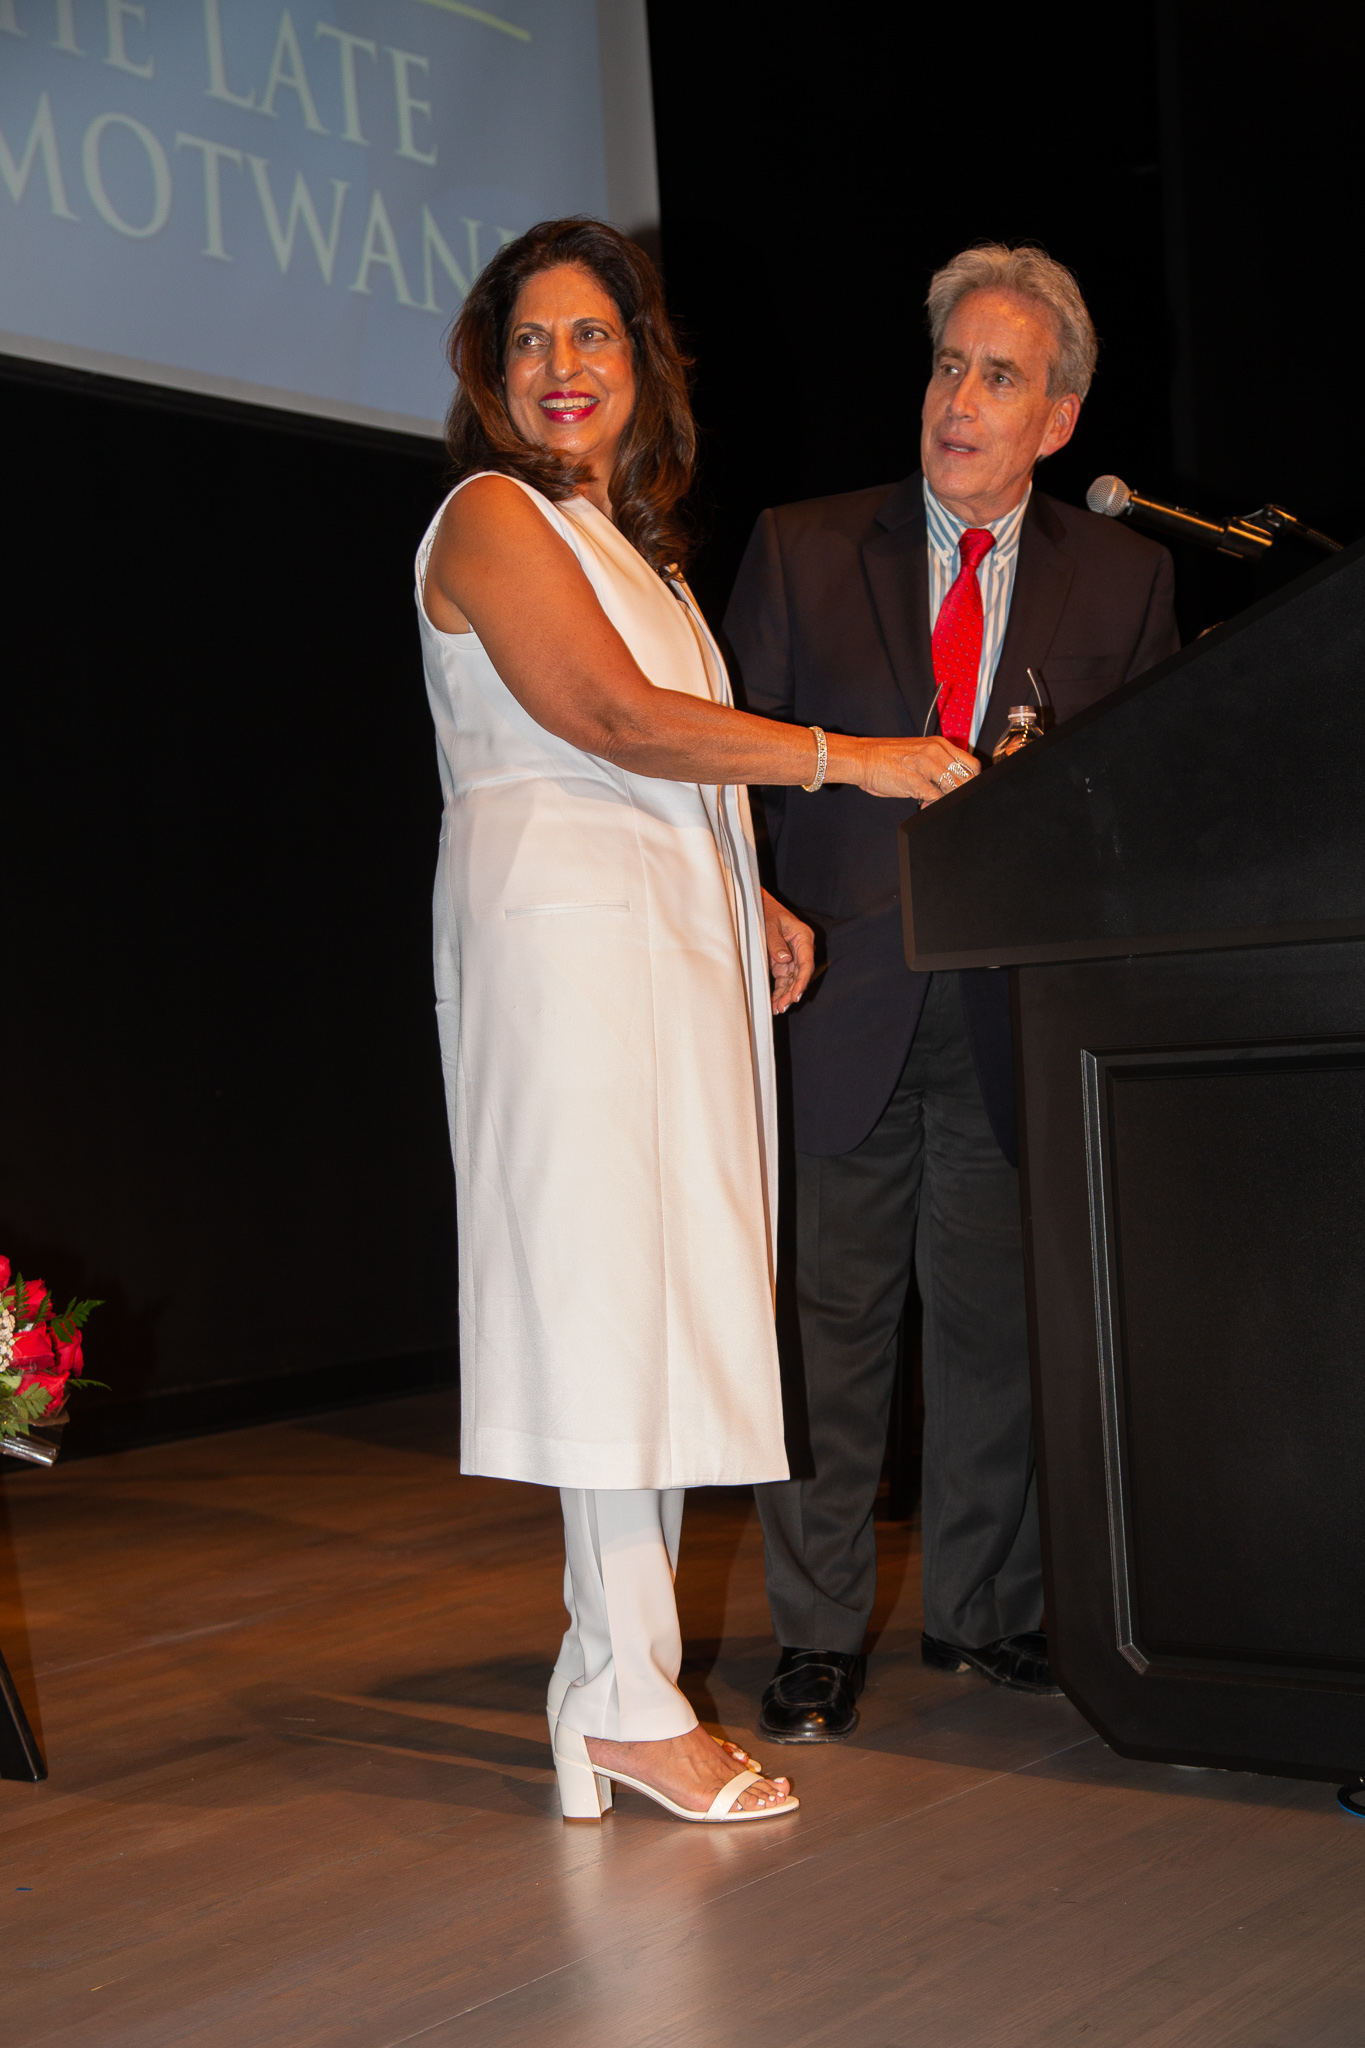 District II Commissioner Steve Glassman with 2018 Honored Founder Ramola Motwani